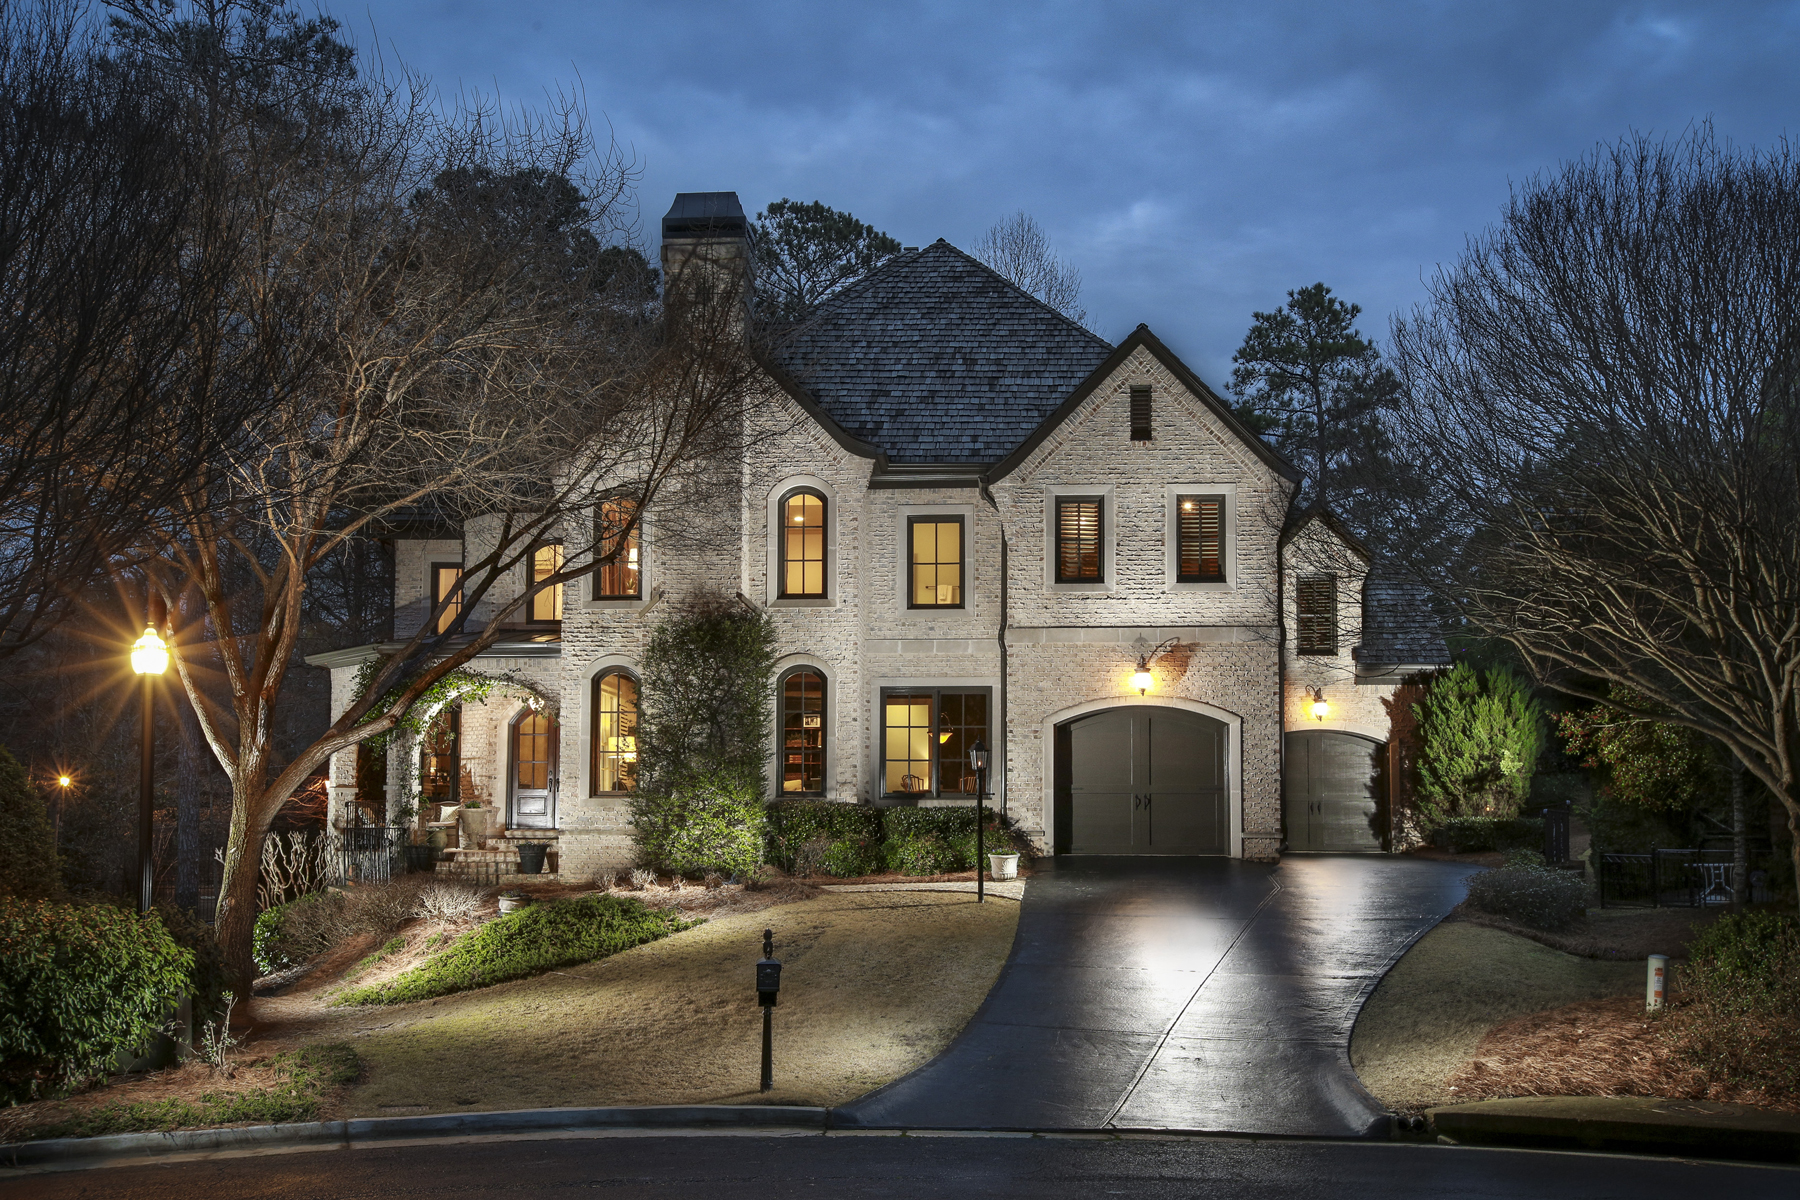 Single Family Home for Sale at Stunning Executive Home 425 Prestwick Court Alpharetta, Georgia 30005 United States